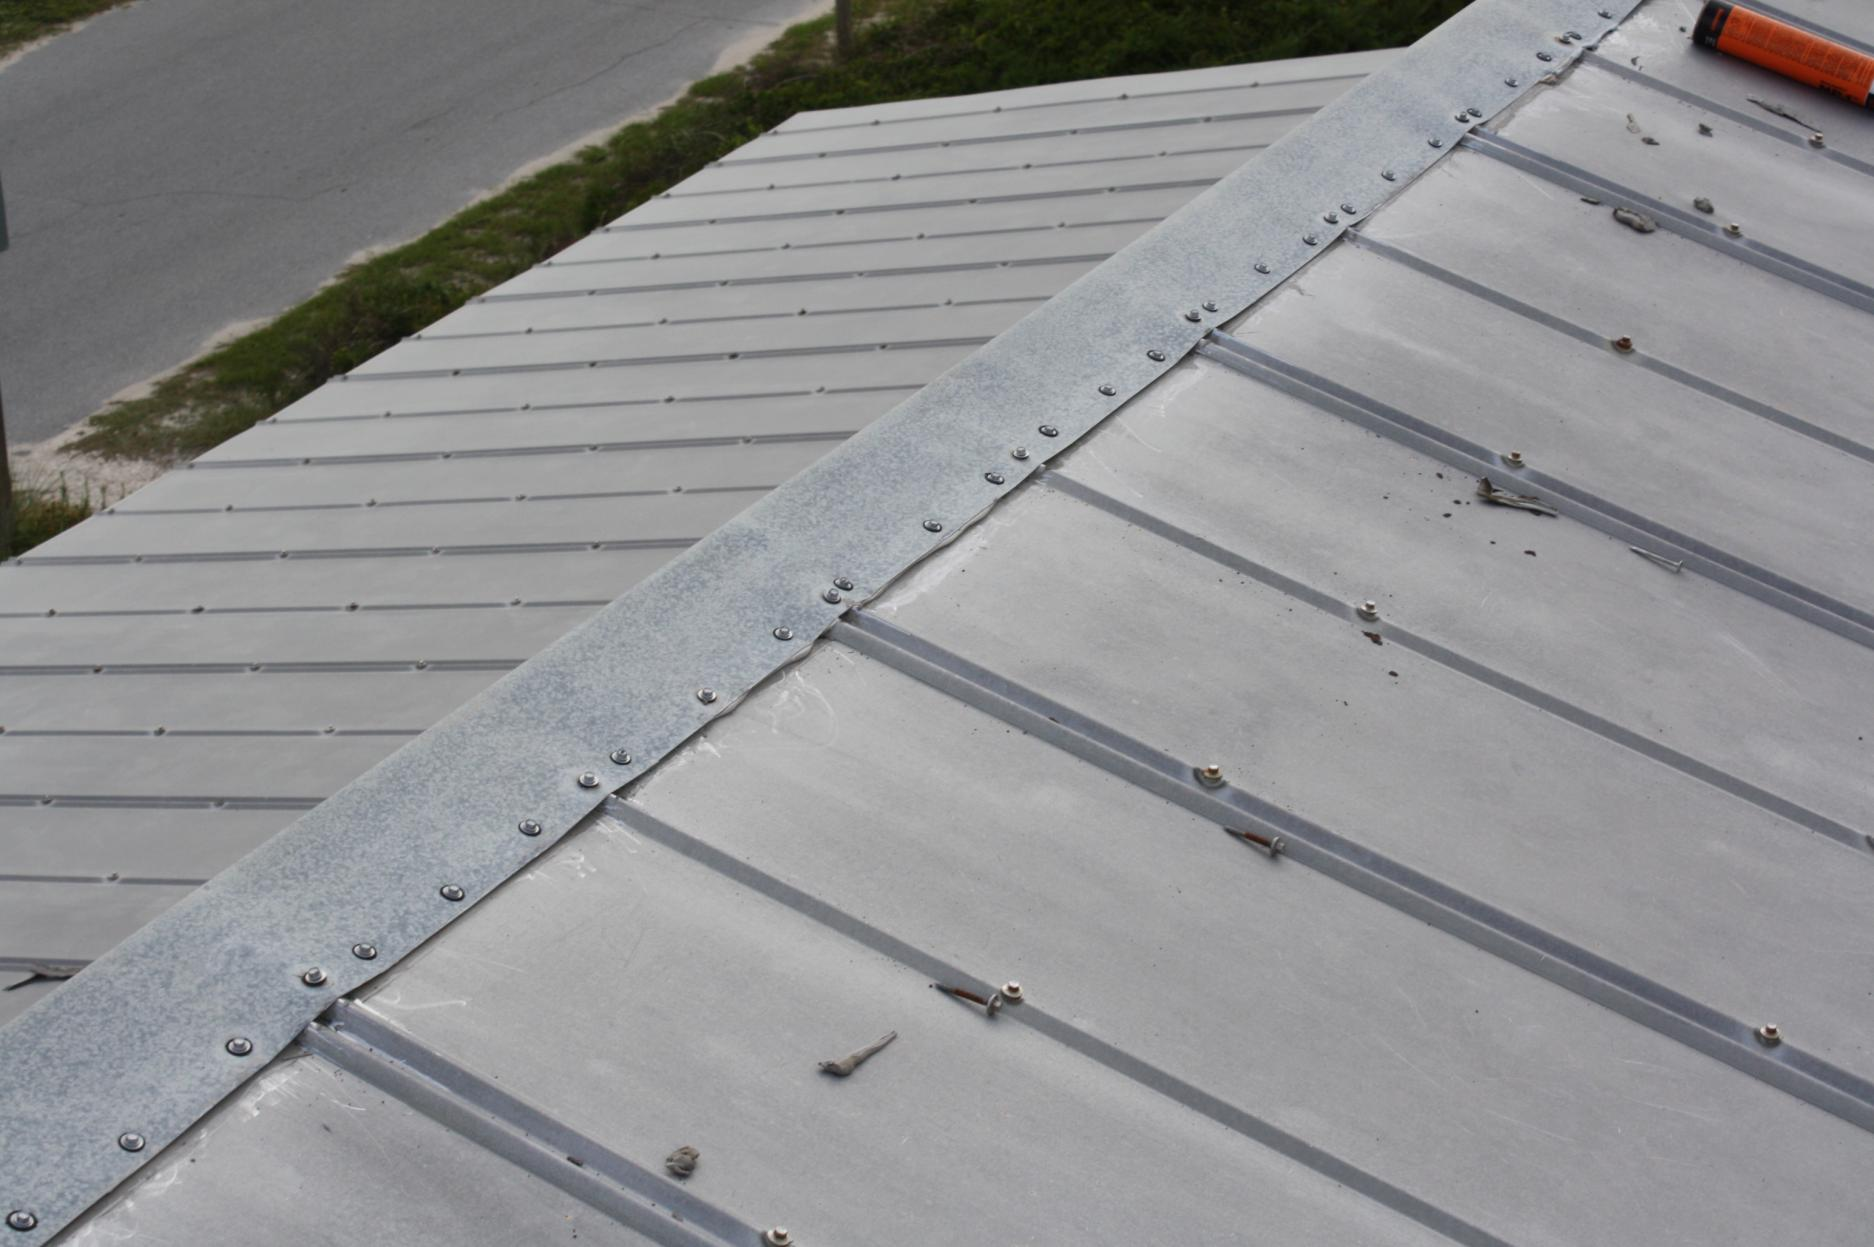 Screws in 5V tin roof at beach-img_2993.jpg